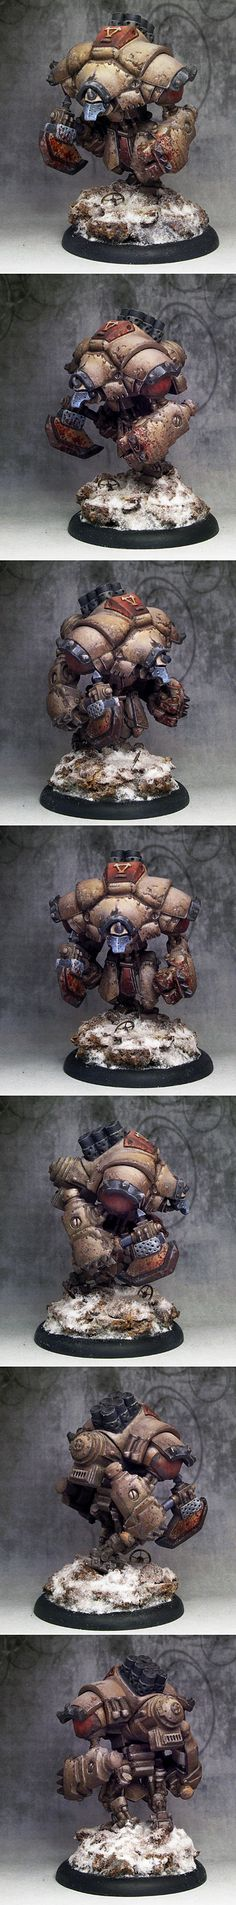 I really dislike privateer press models but I love the weathered paint paintjob